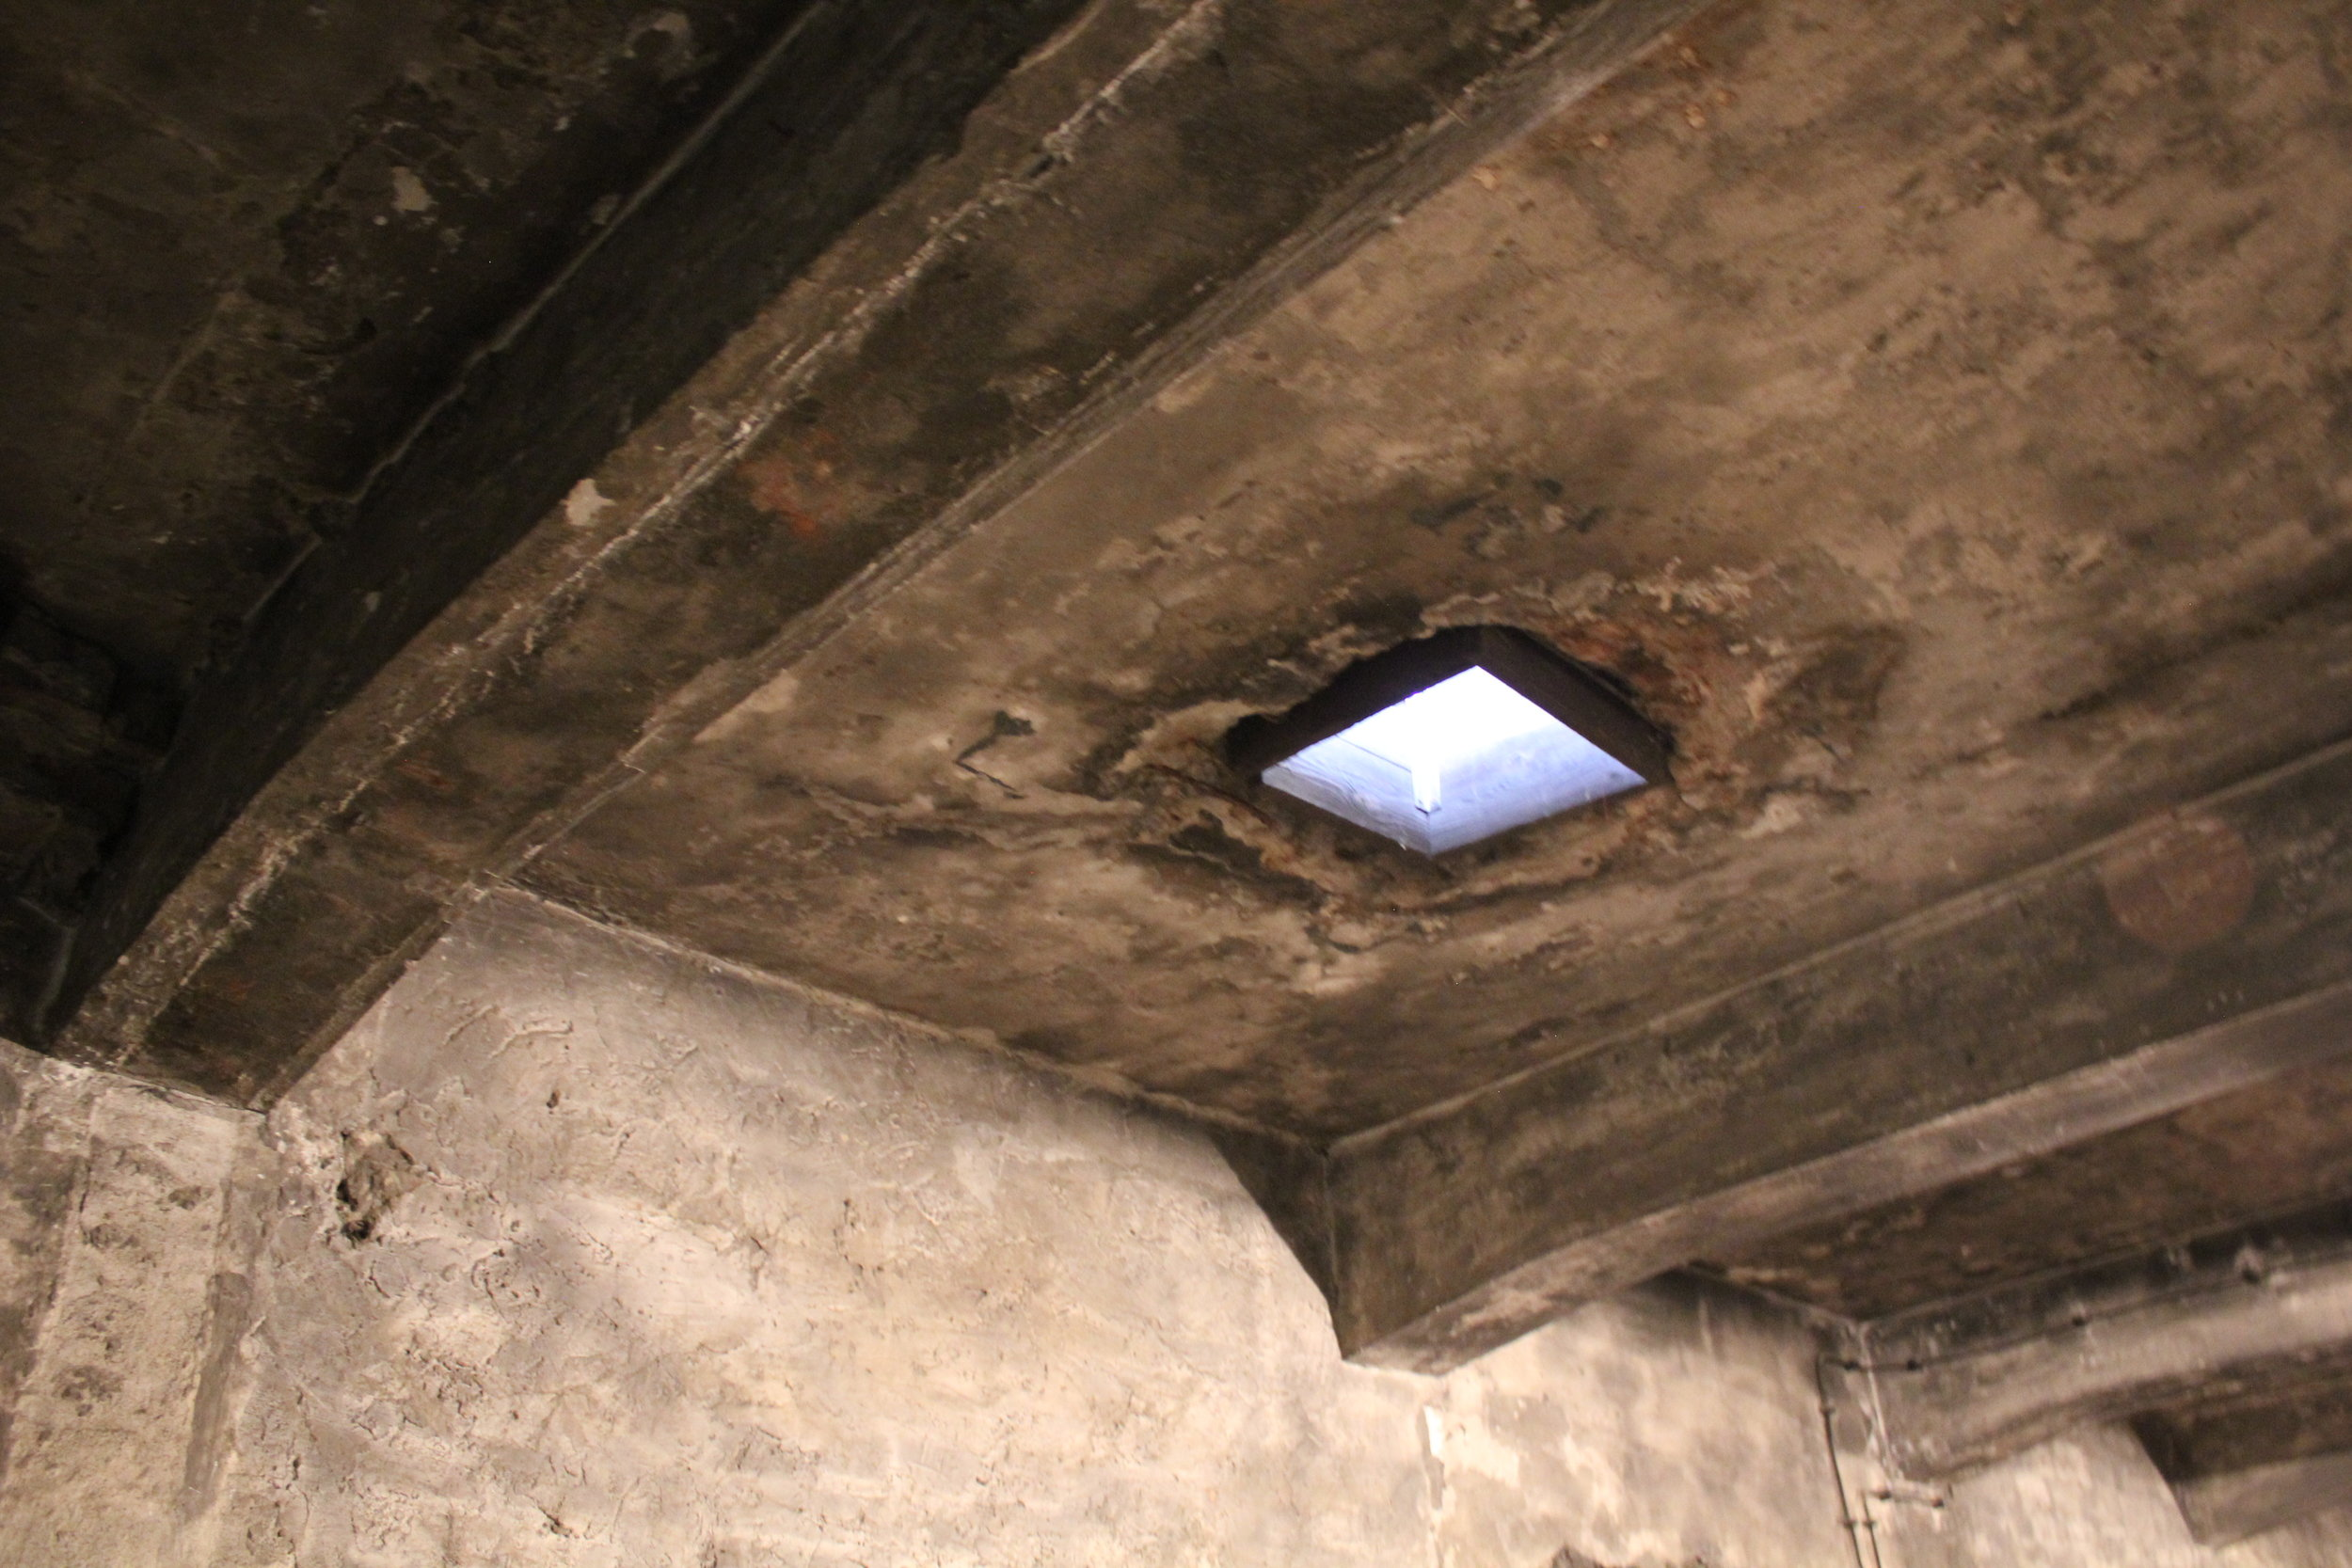 The hatch in Krema I through which canisters of Zyklon B were dropped